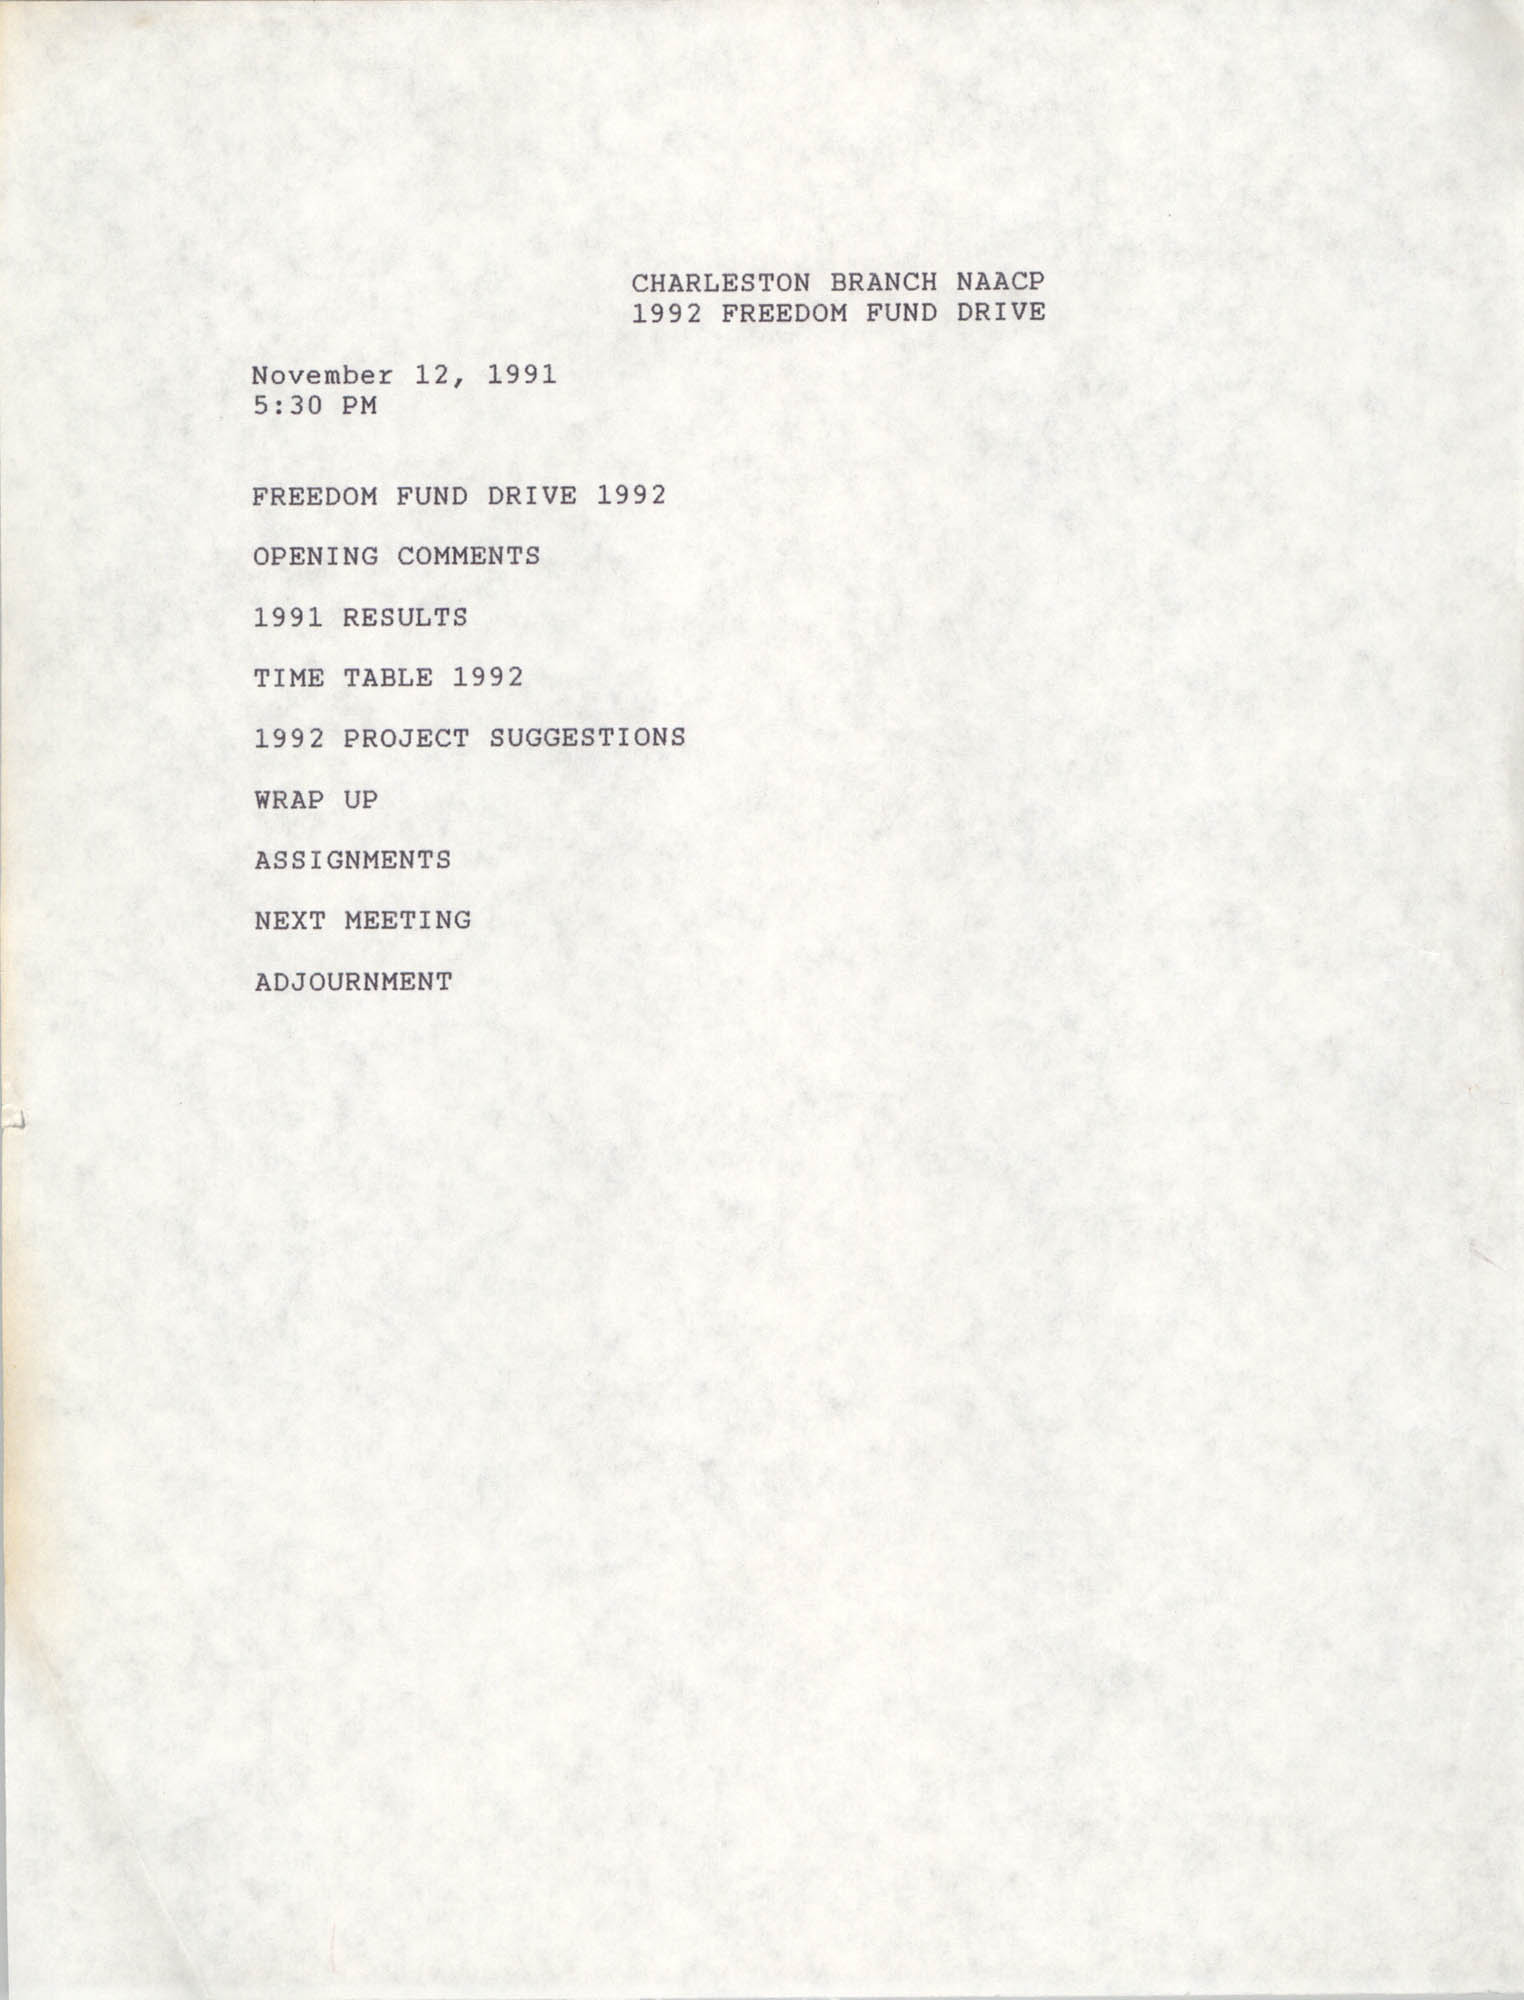 Agenda, Freedom Fund Drive, National Association for the Advancement of Colored People, November 12, 1991